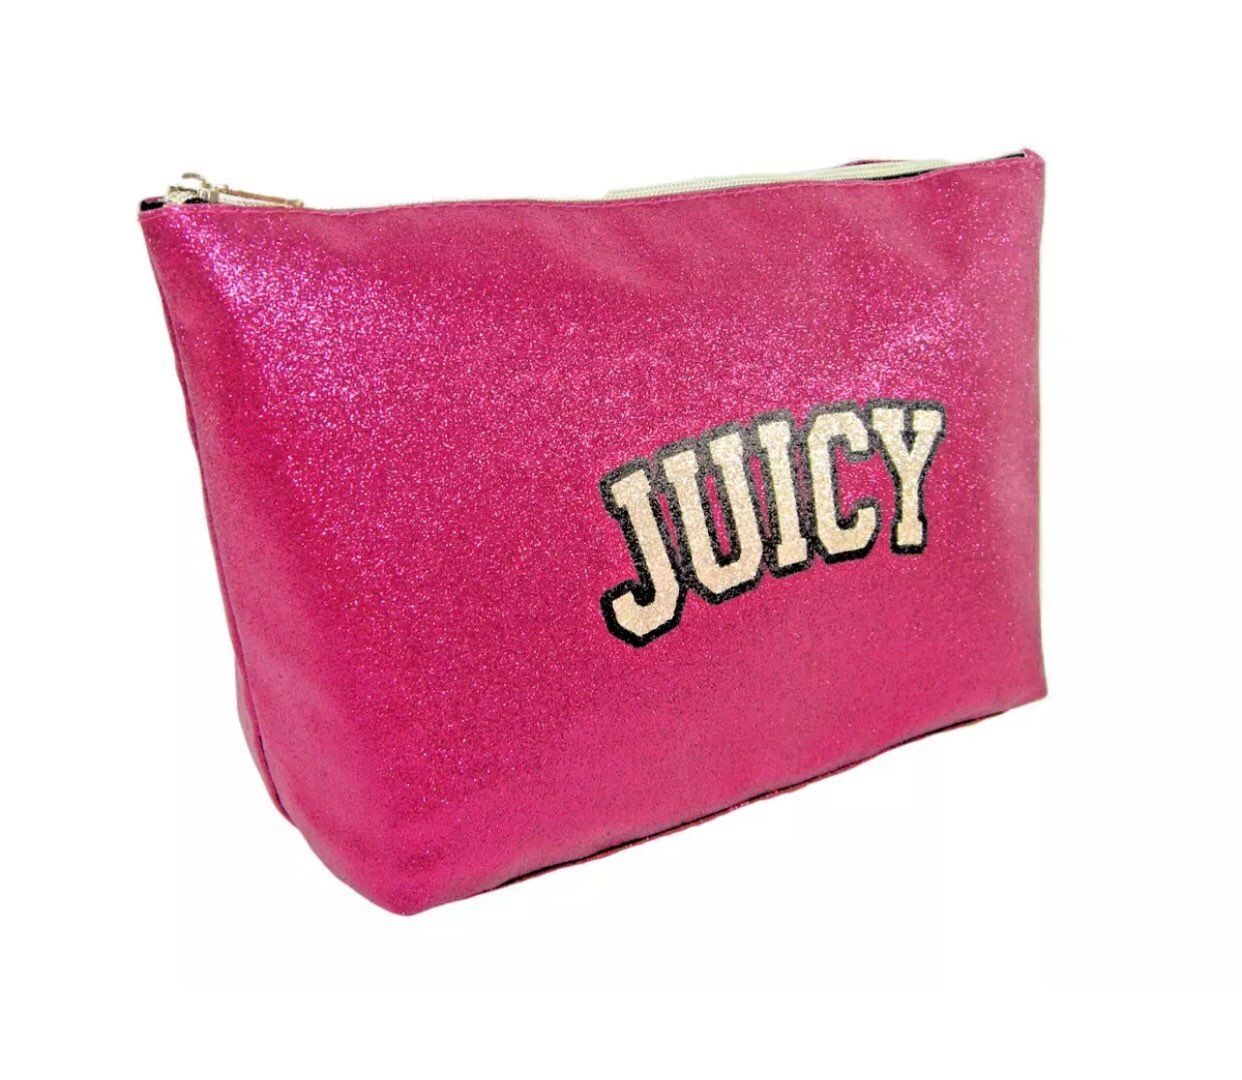 Check out what I'm selling on Mercari! Juicy Couture Pink